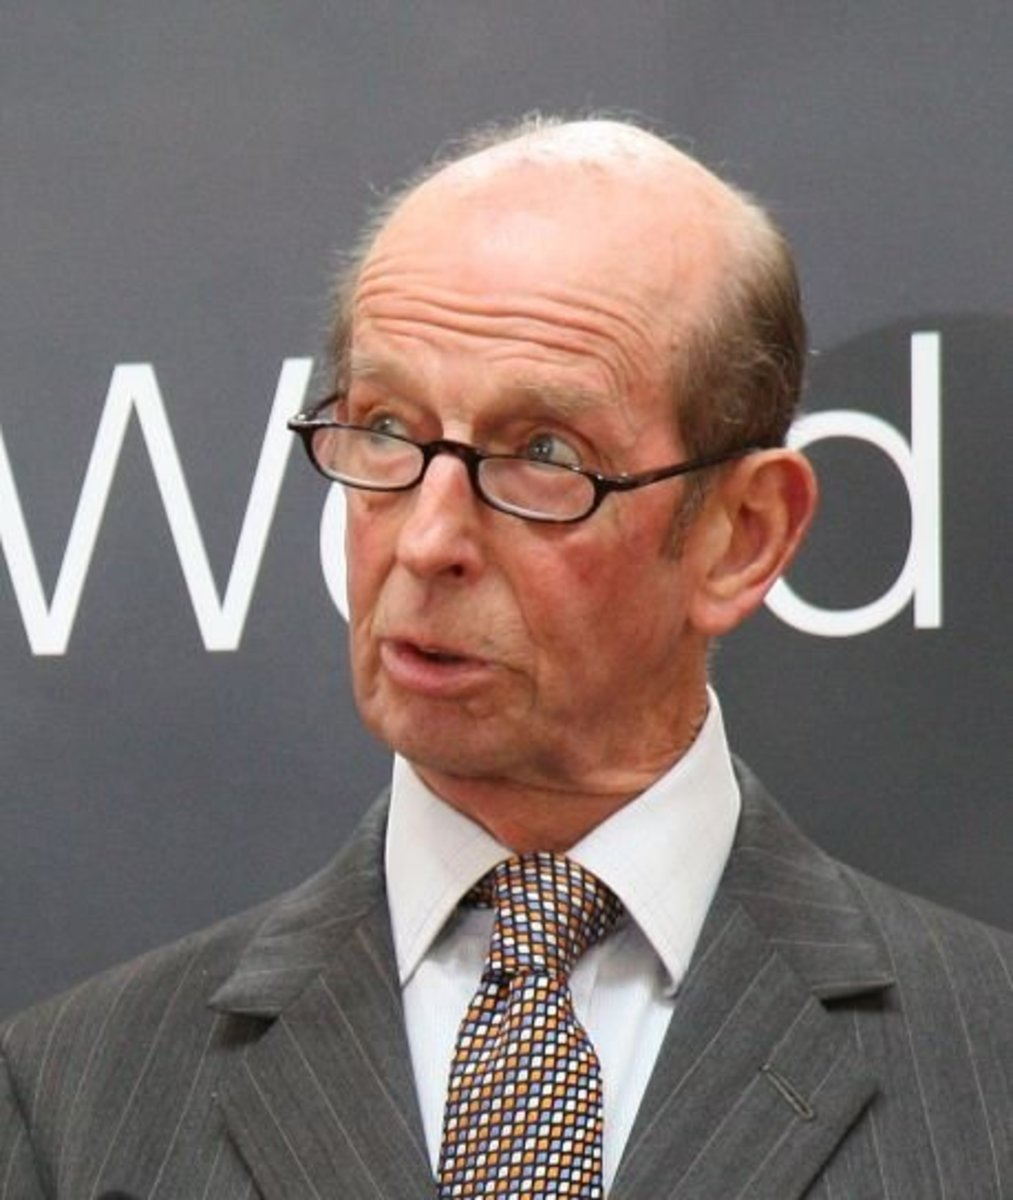 The current Duke of Kent, born in 1935. When his father George died in a plane crash in 1942 Edward inherited the dukedom.